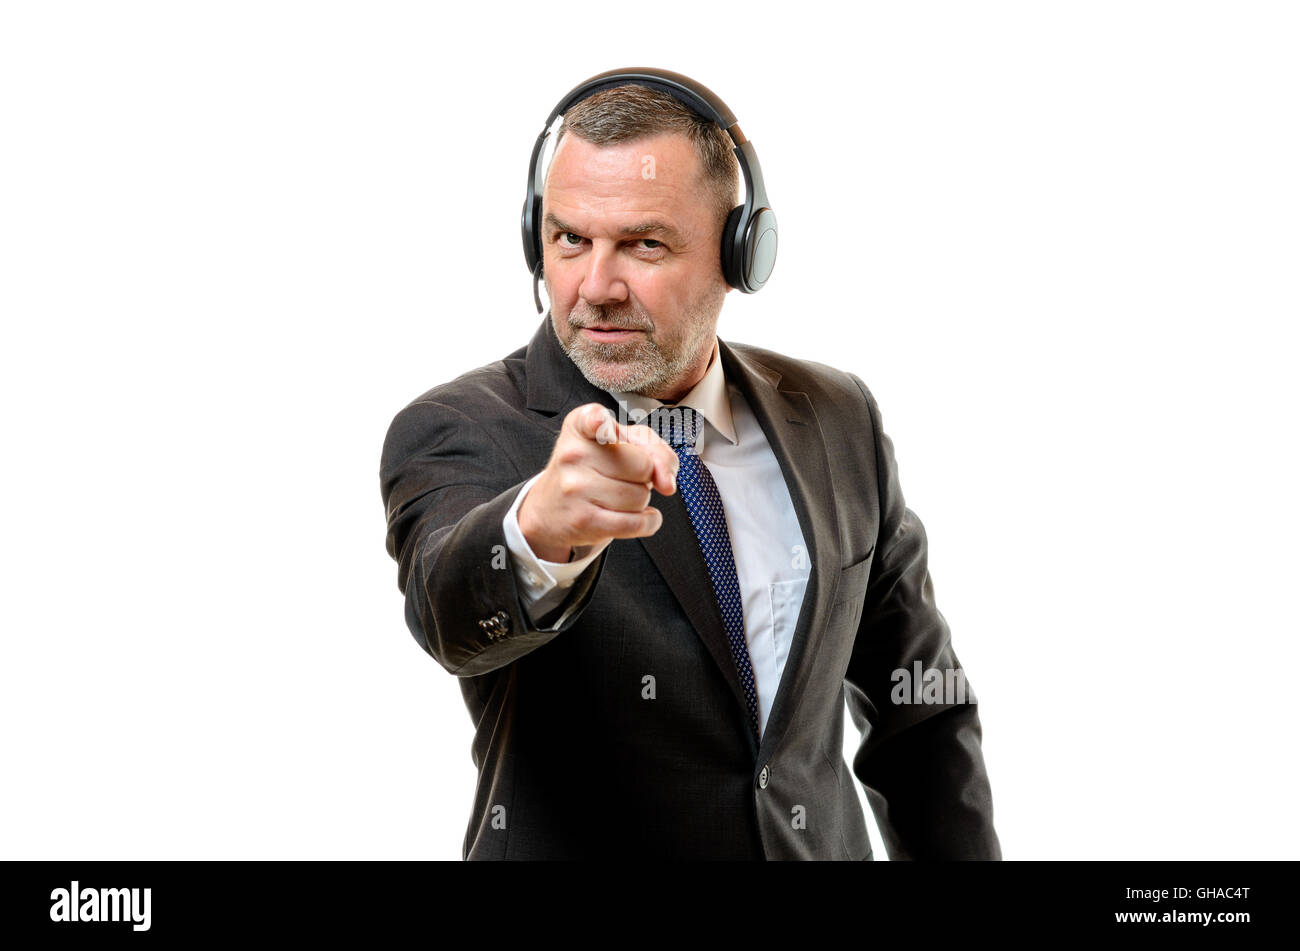 Irate middle-aged businessman wearing headphones pointing a finger of blame as he identifies something or makes - Stock Image